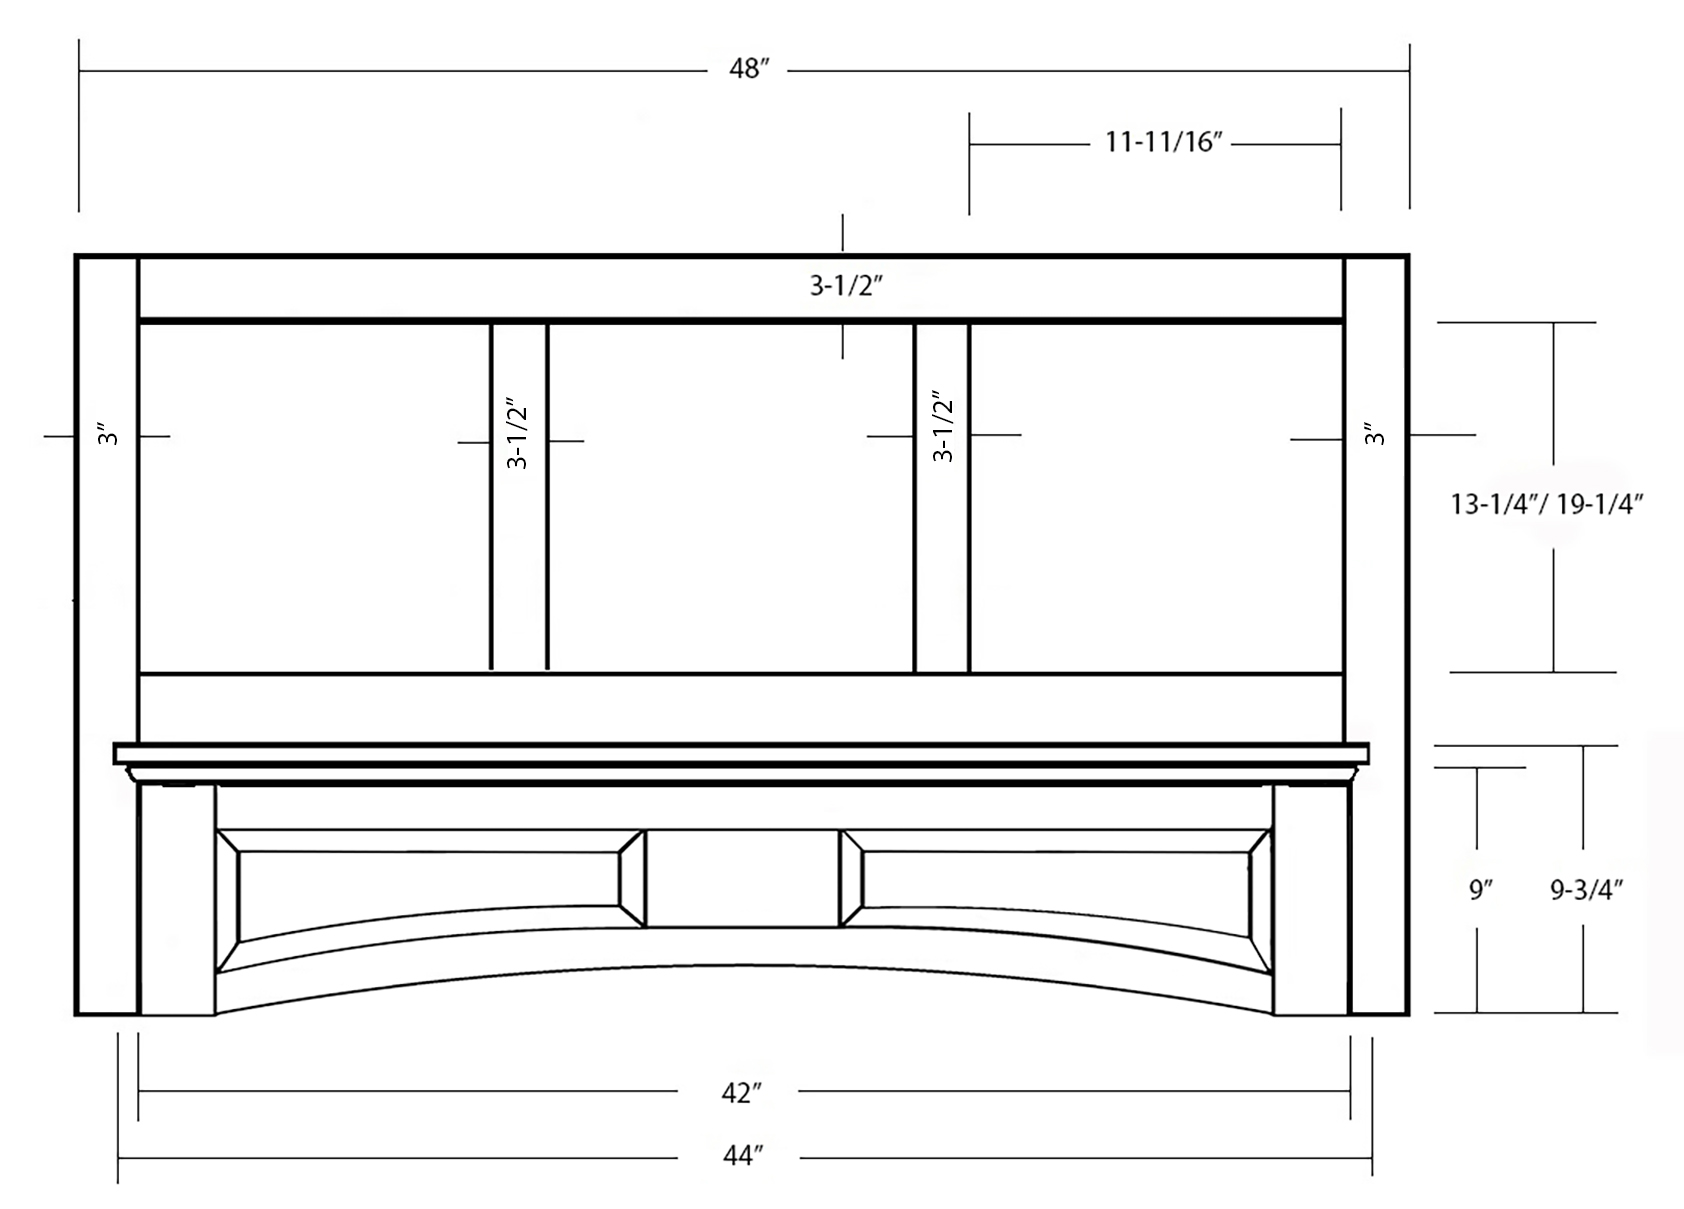 SY-WMHRP 48 MANTLE HOOD WITH ARCHED RAISED PANEL VALANCE (front view)